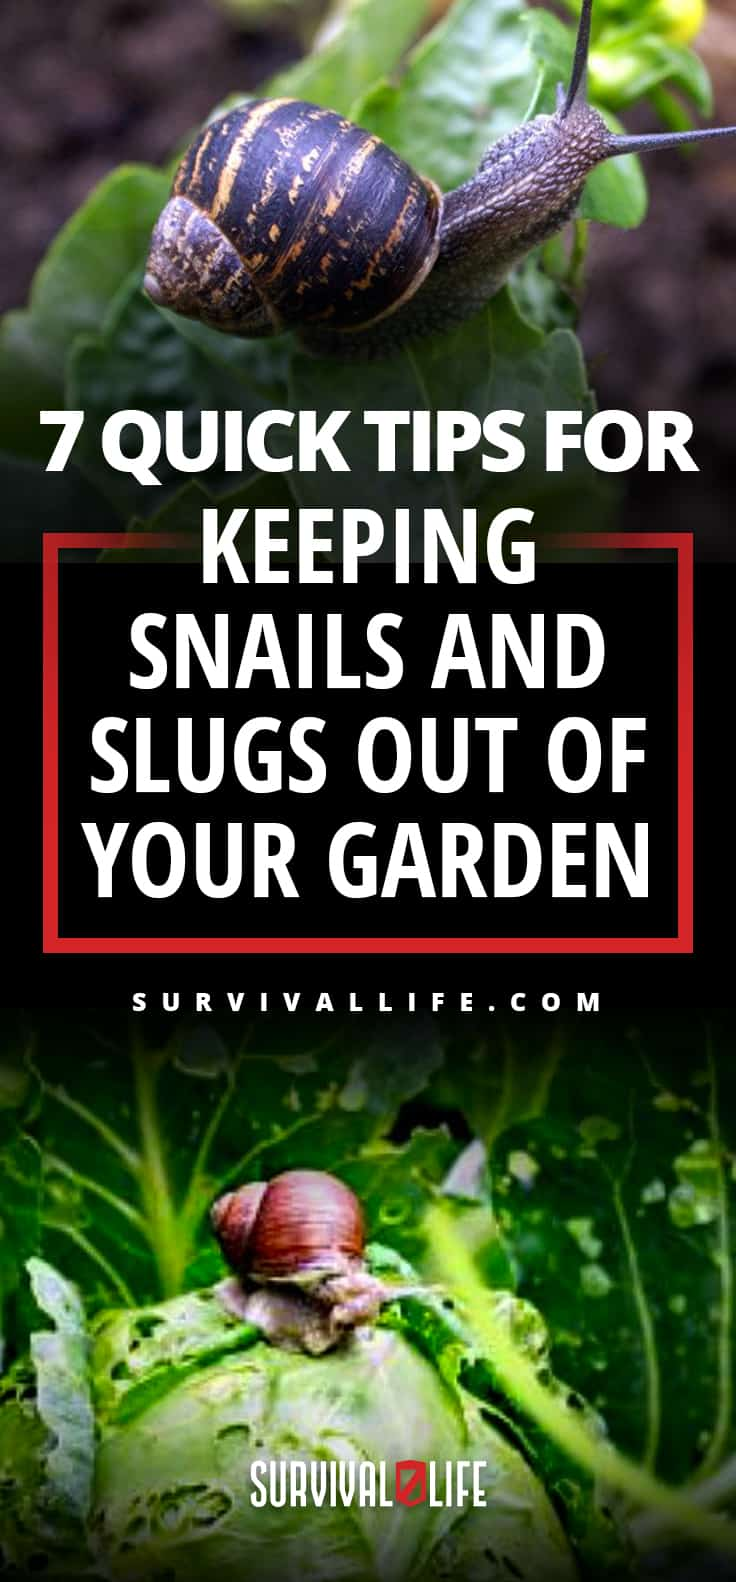 Quick Tips For Keeping Snails And Slugs Out Of Your Garden | Survival Gardening | https://survivallife.com/snails-and-slugs-away-survival-gardening/